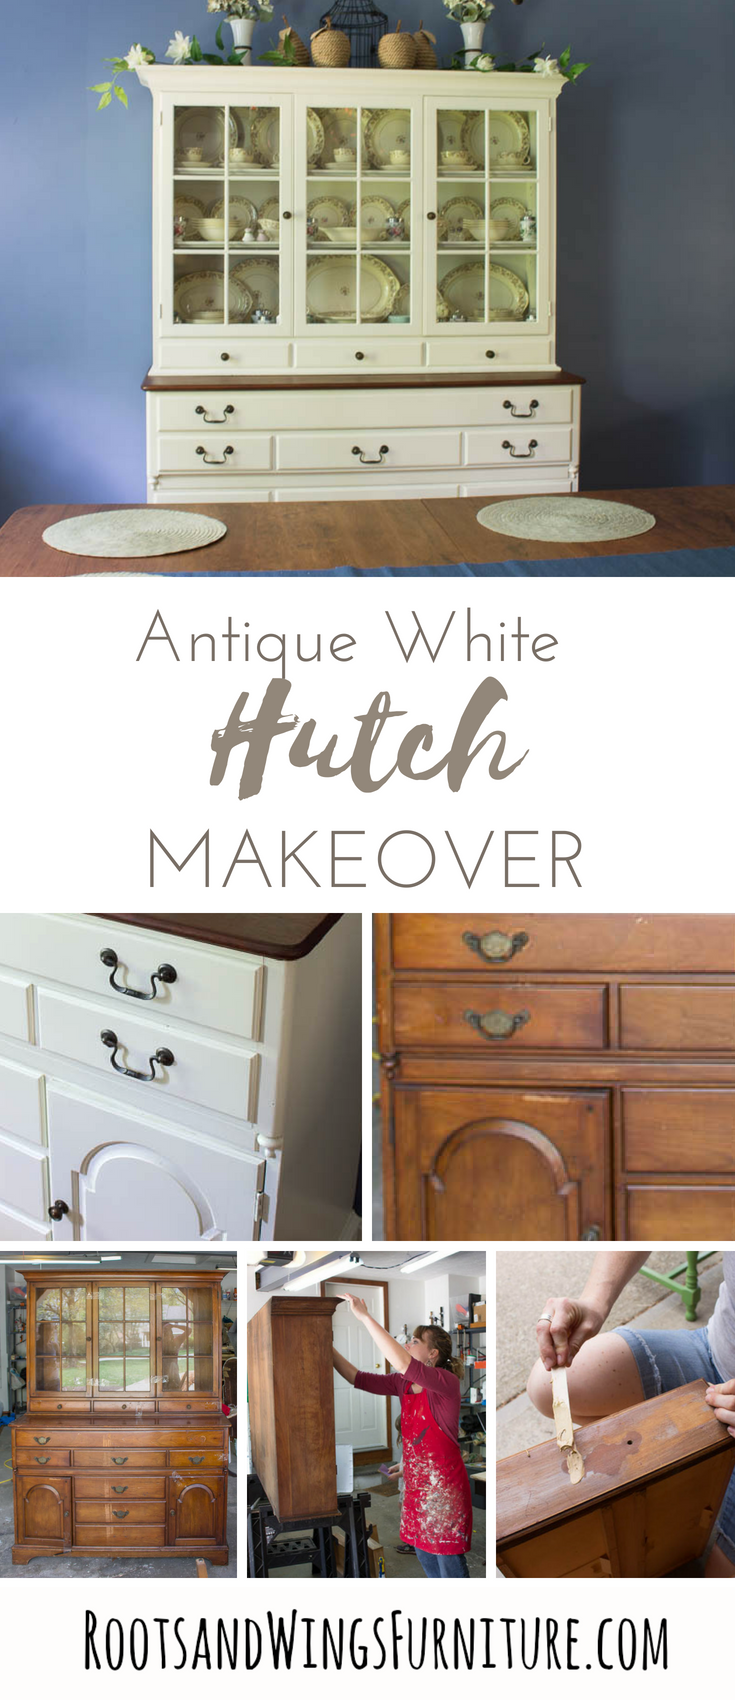 ANTIQUE WHITE HUTCH MAKEOVER by Roots and Wings Furniture 2.png